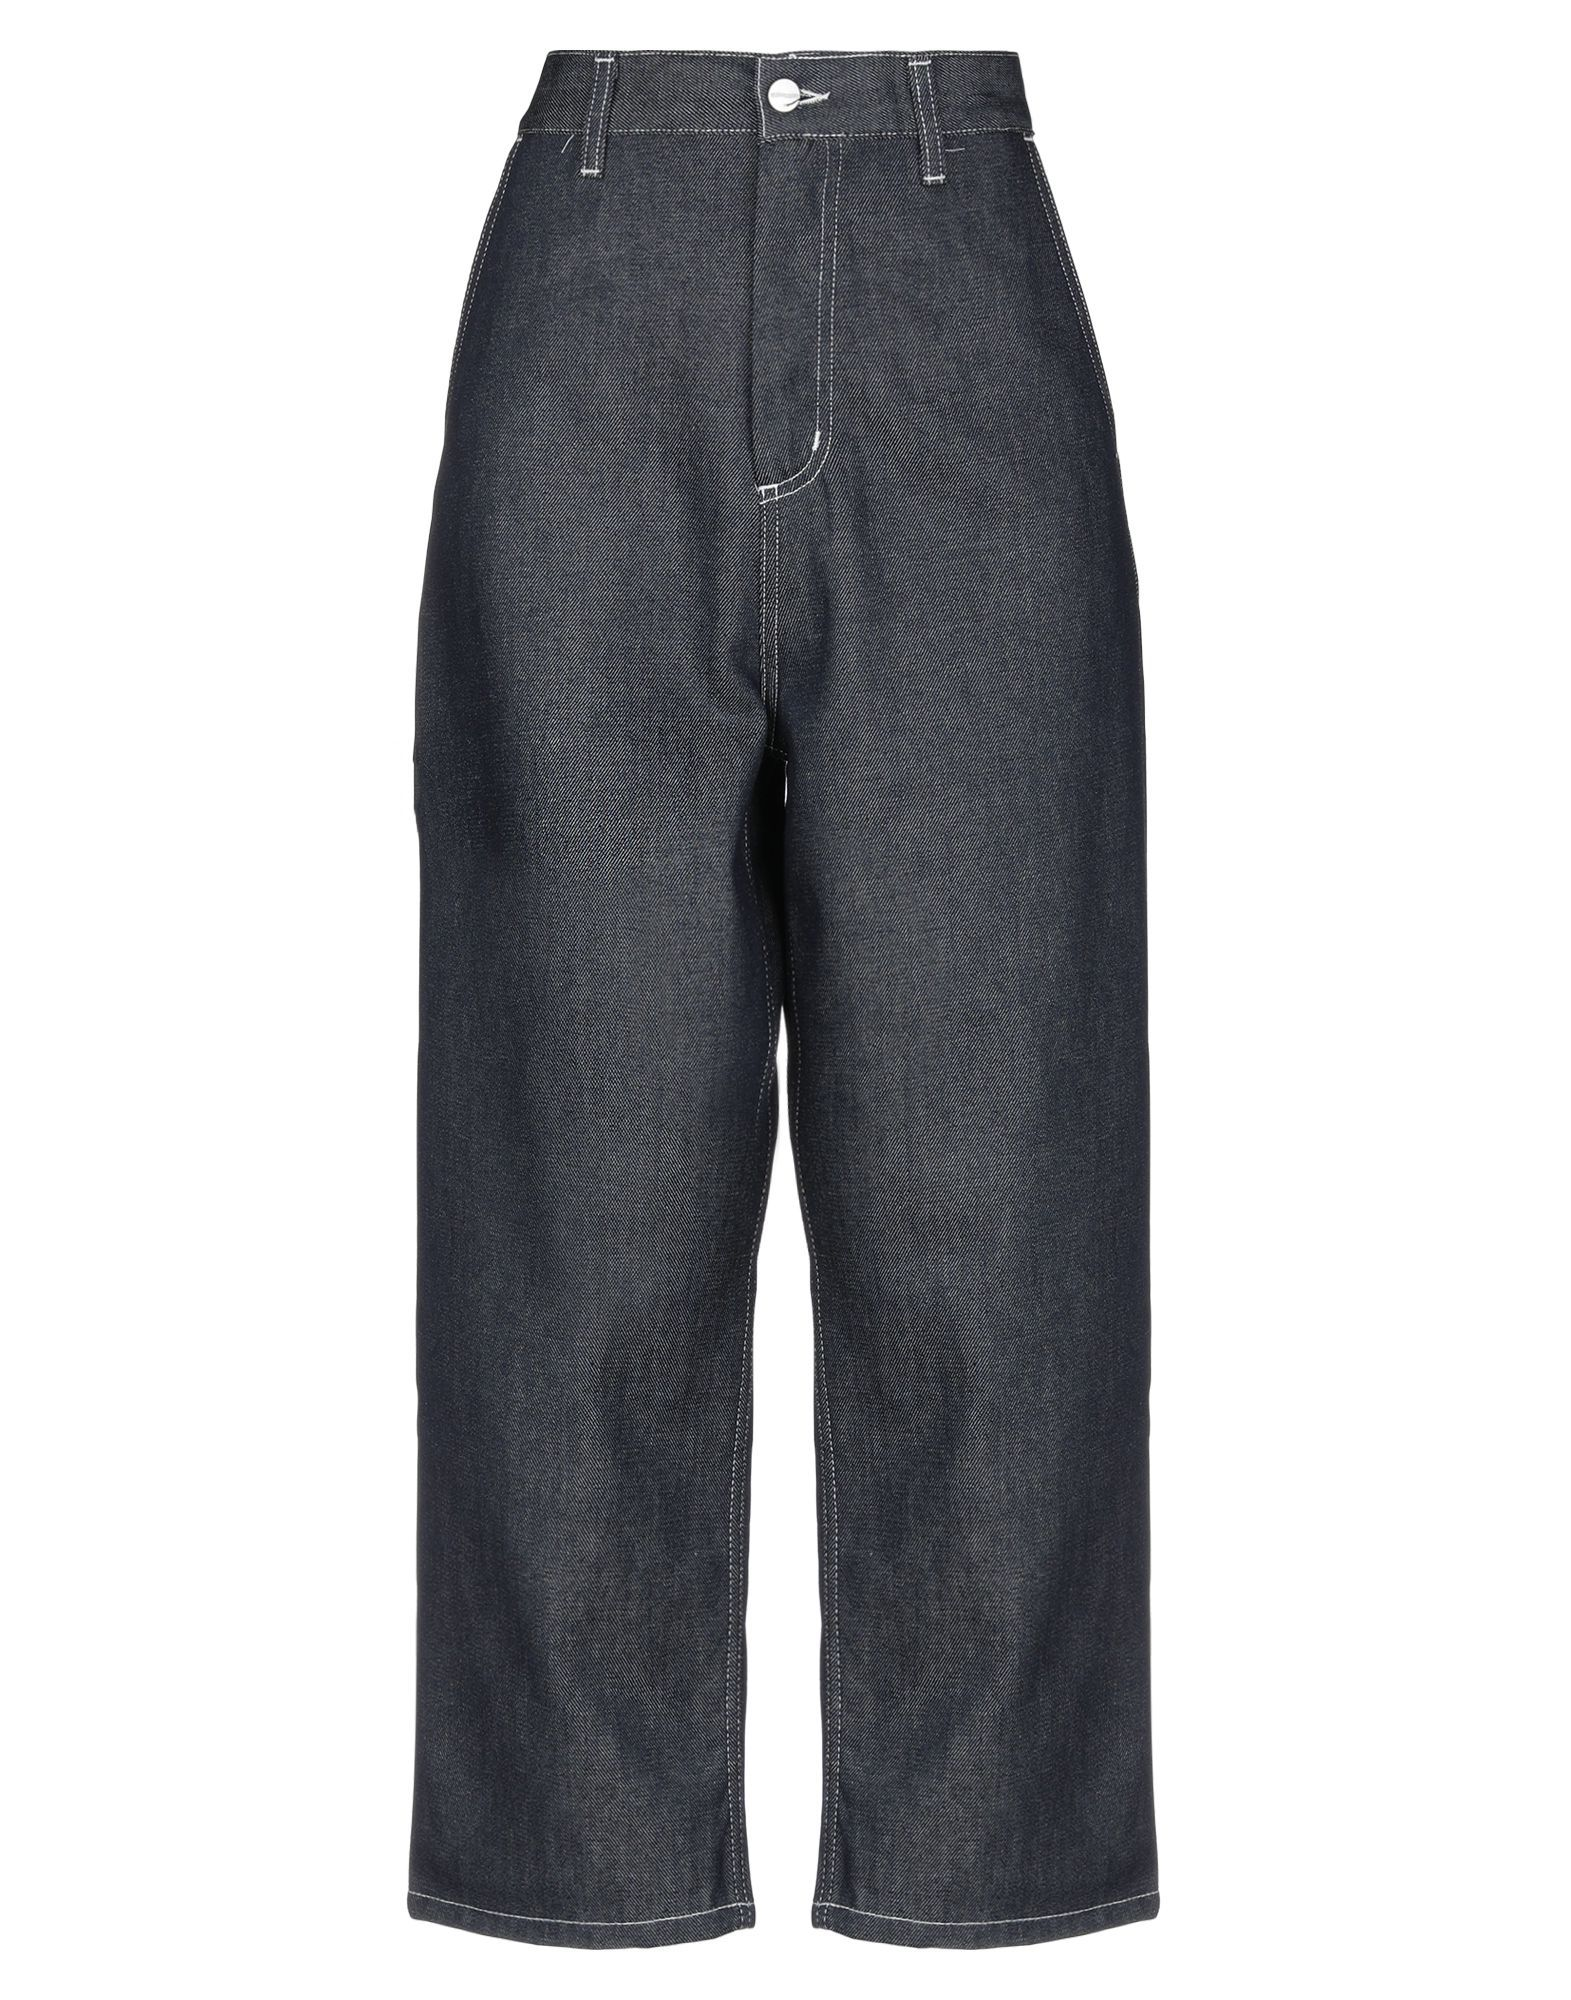 Carhartt Blue Cotton Jeans